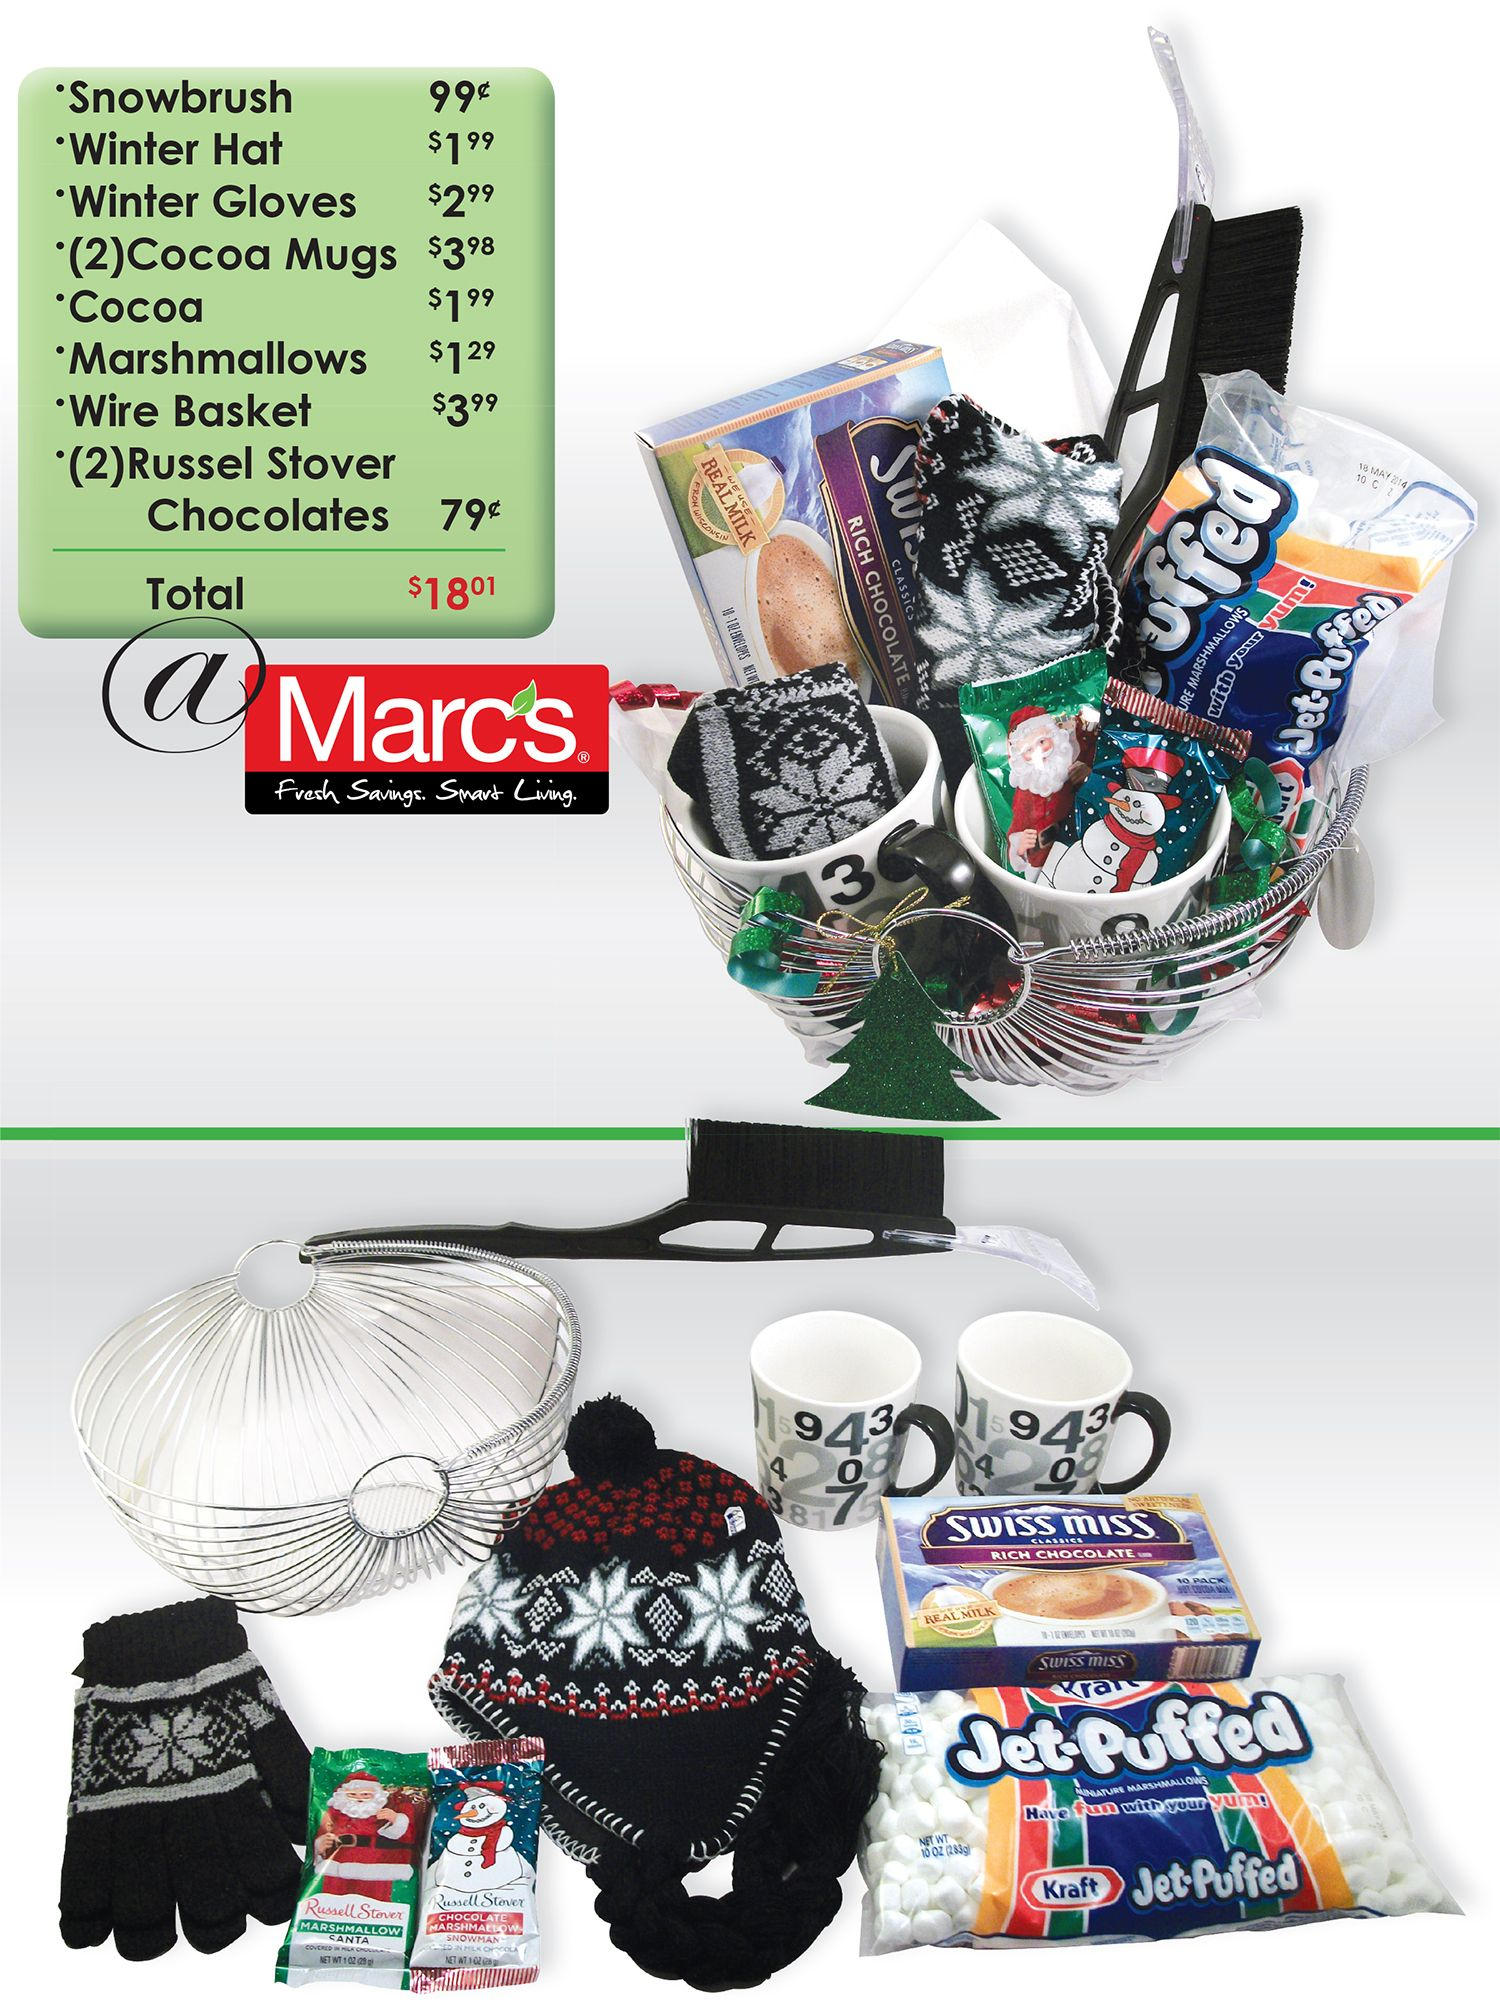 Check out some great gift ideas you can come up with for those on your list this year, showcasing their personal favorites & saving you money!